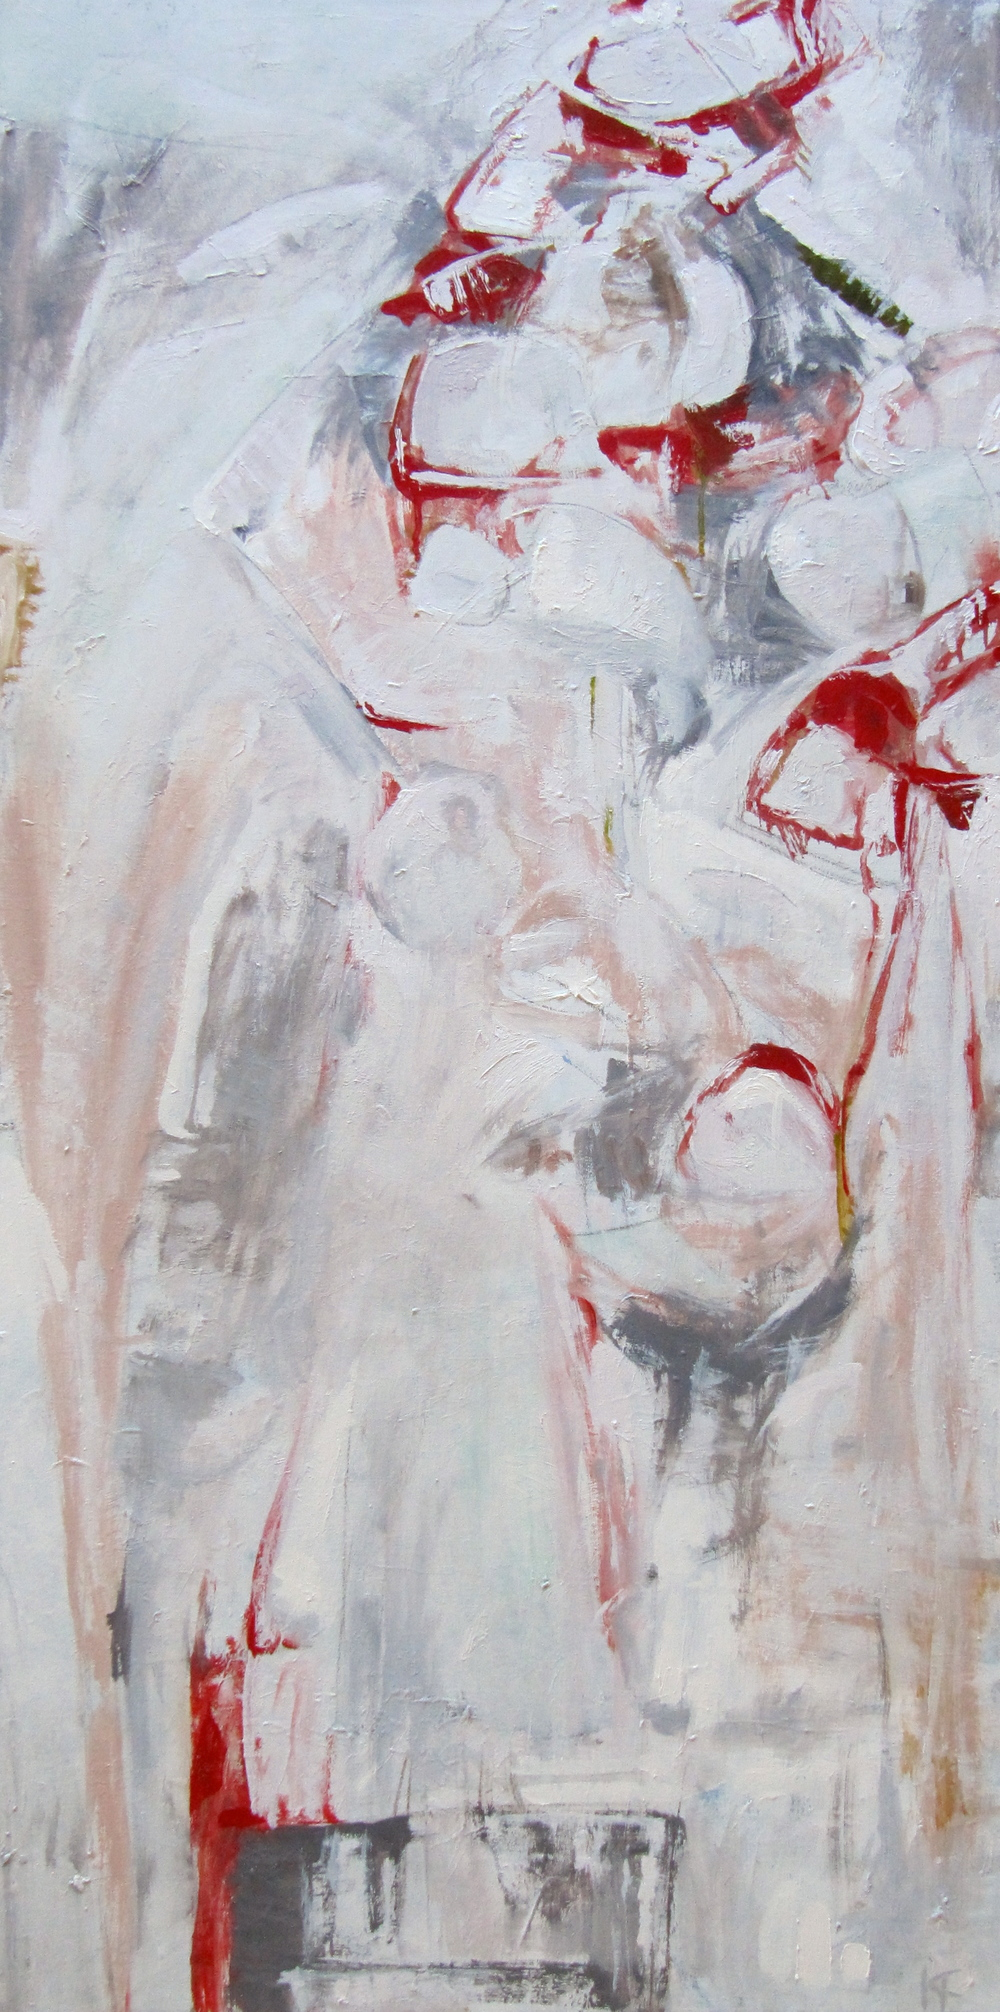 V, 2008 / Oil on canvas, 48 x 24 / SOLD